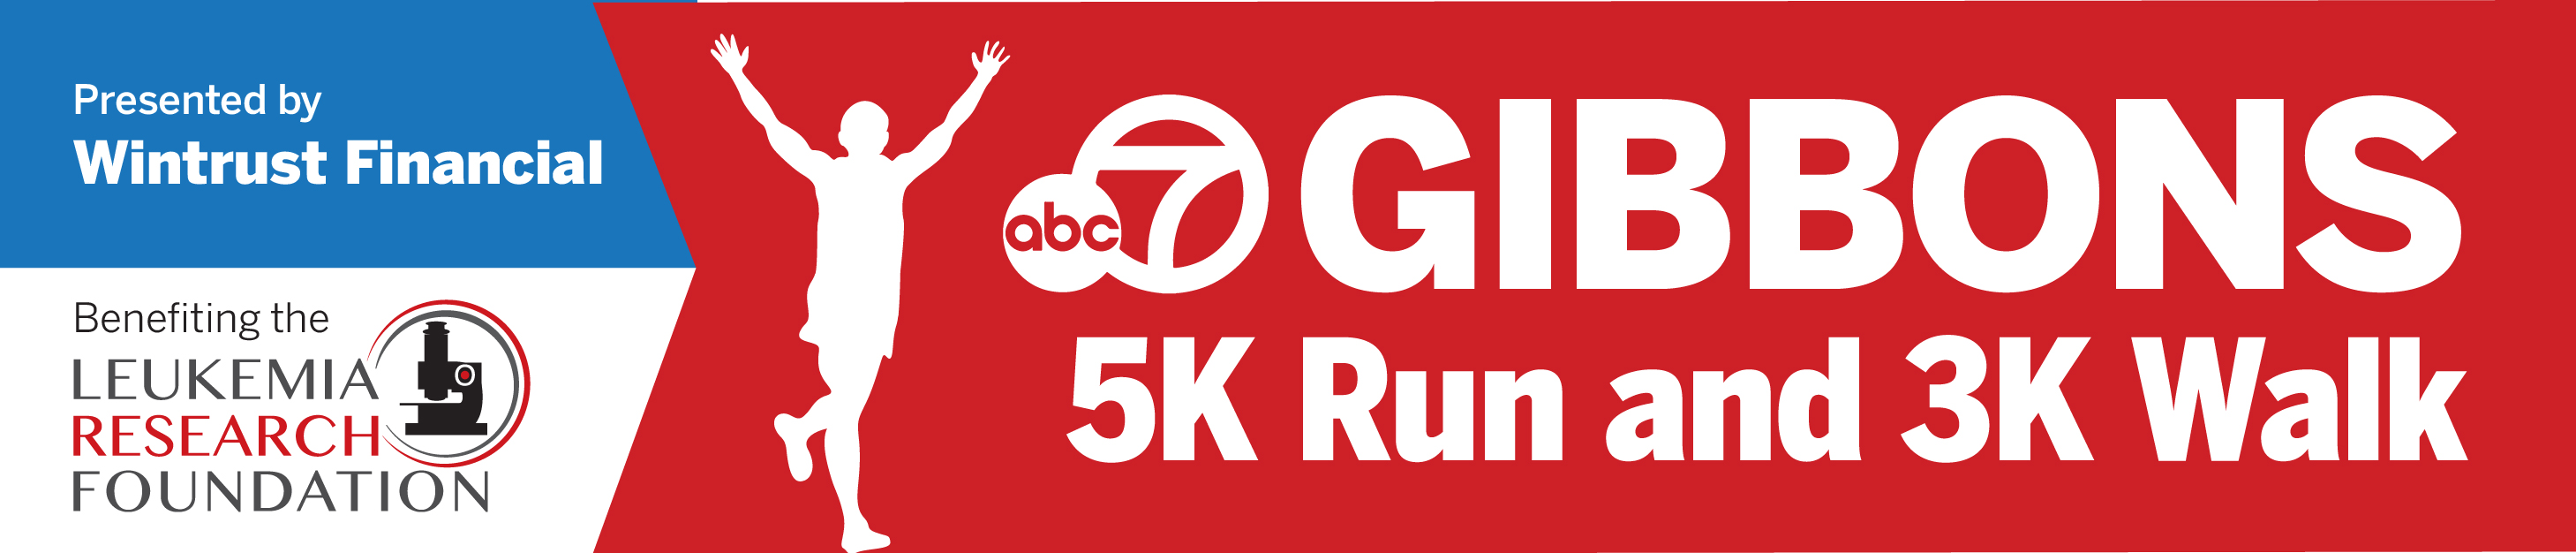 Register for the 2018 ABC7 Gibbons 5K Run and 3K Walk